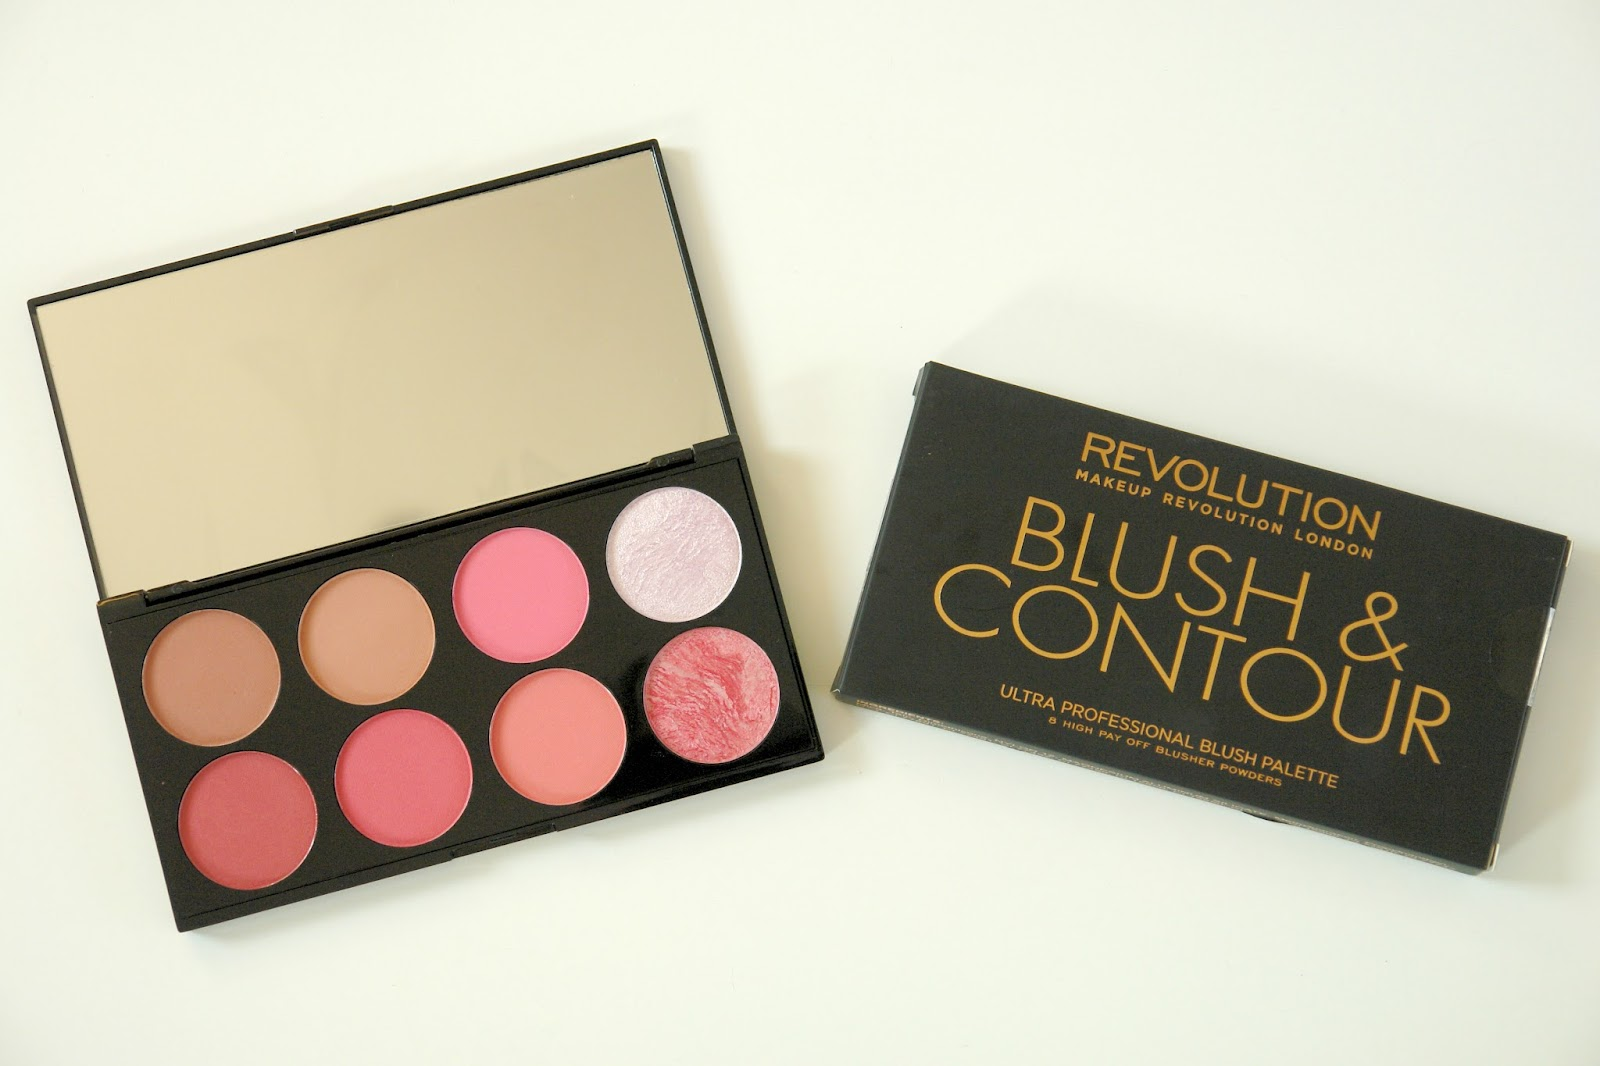 Makeup Revloution Ultra Blush and Contour Palette in Sugar and Spice review, Makeup Revolution, make up, blusher, palette, bronzer, highlighter, review, beauty, blogger